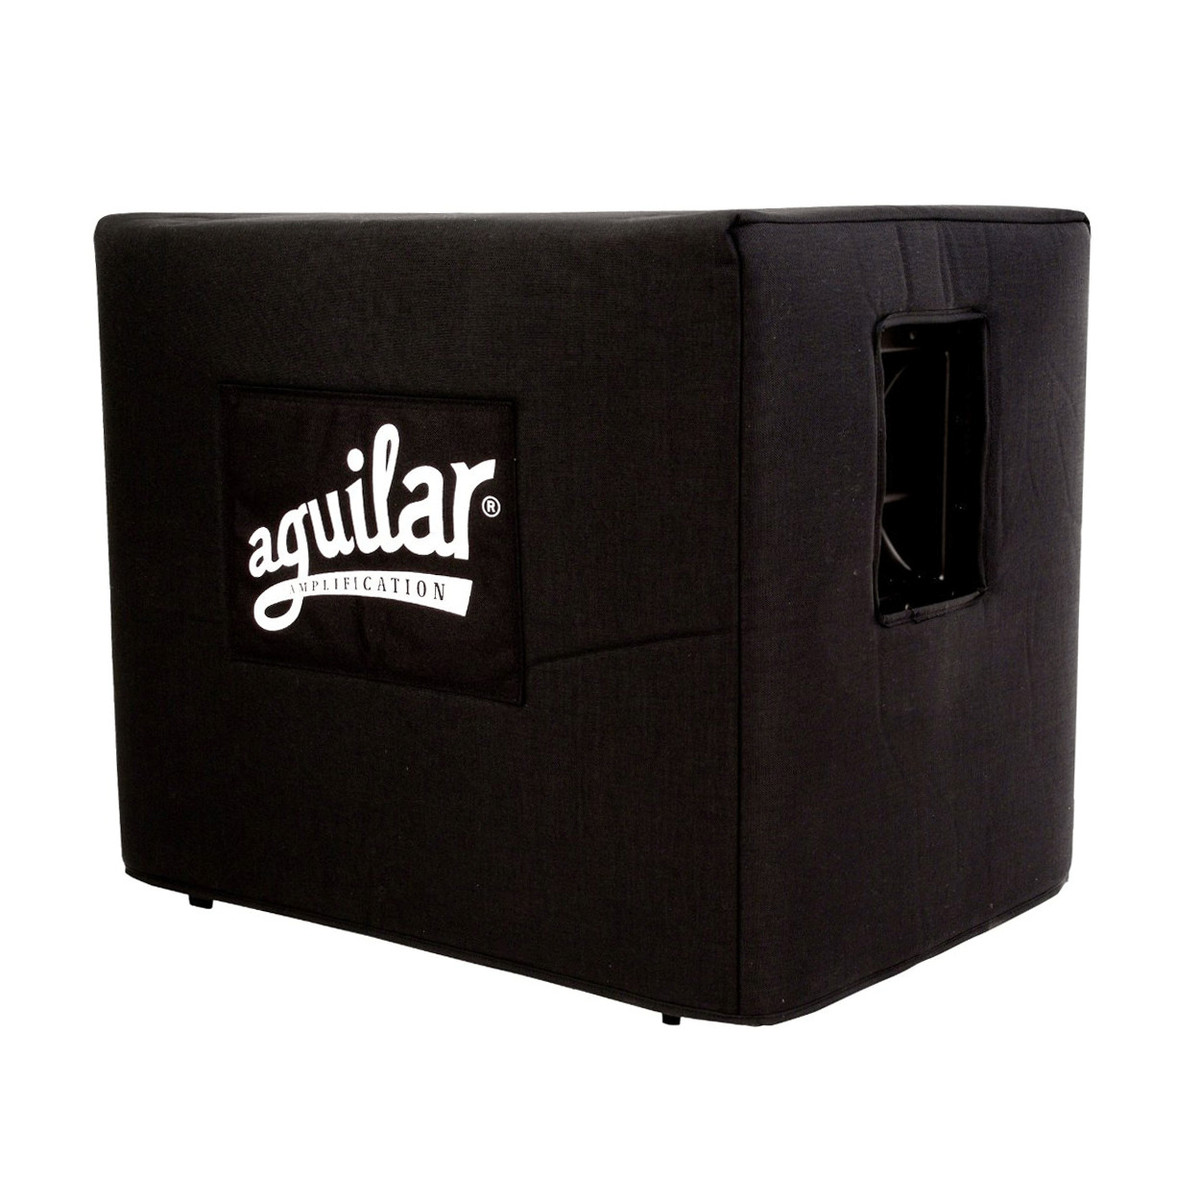 Aguilar Cabinet Cover for DB210 at Gear4music.com